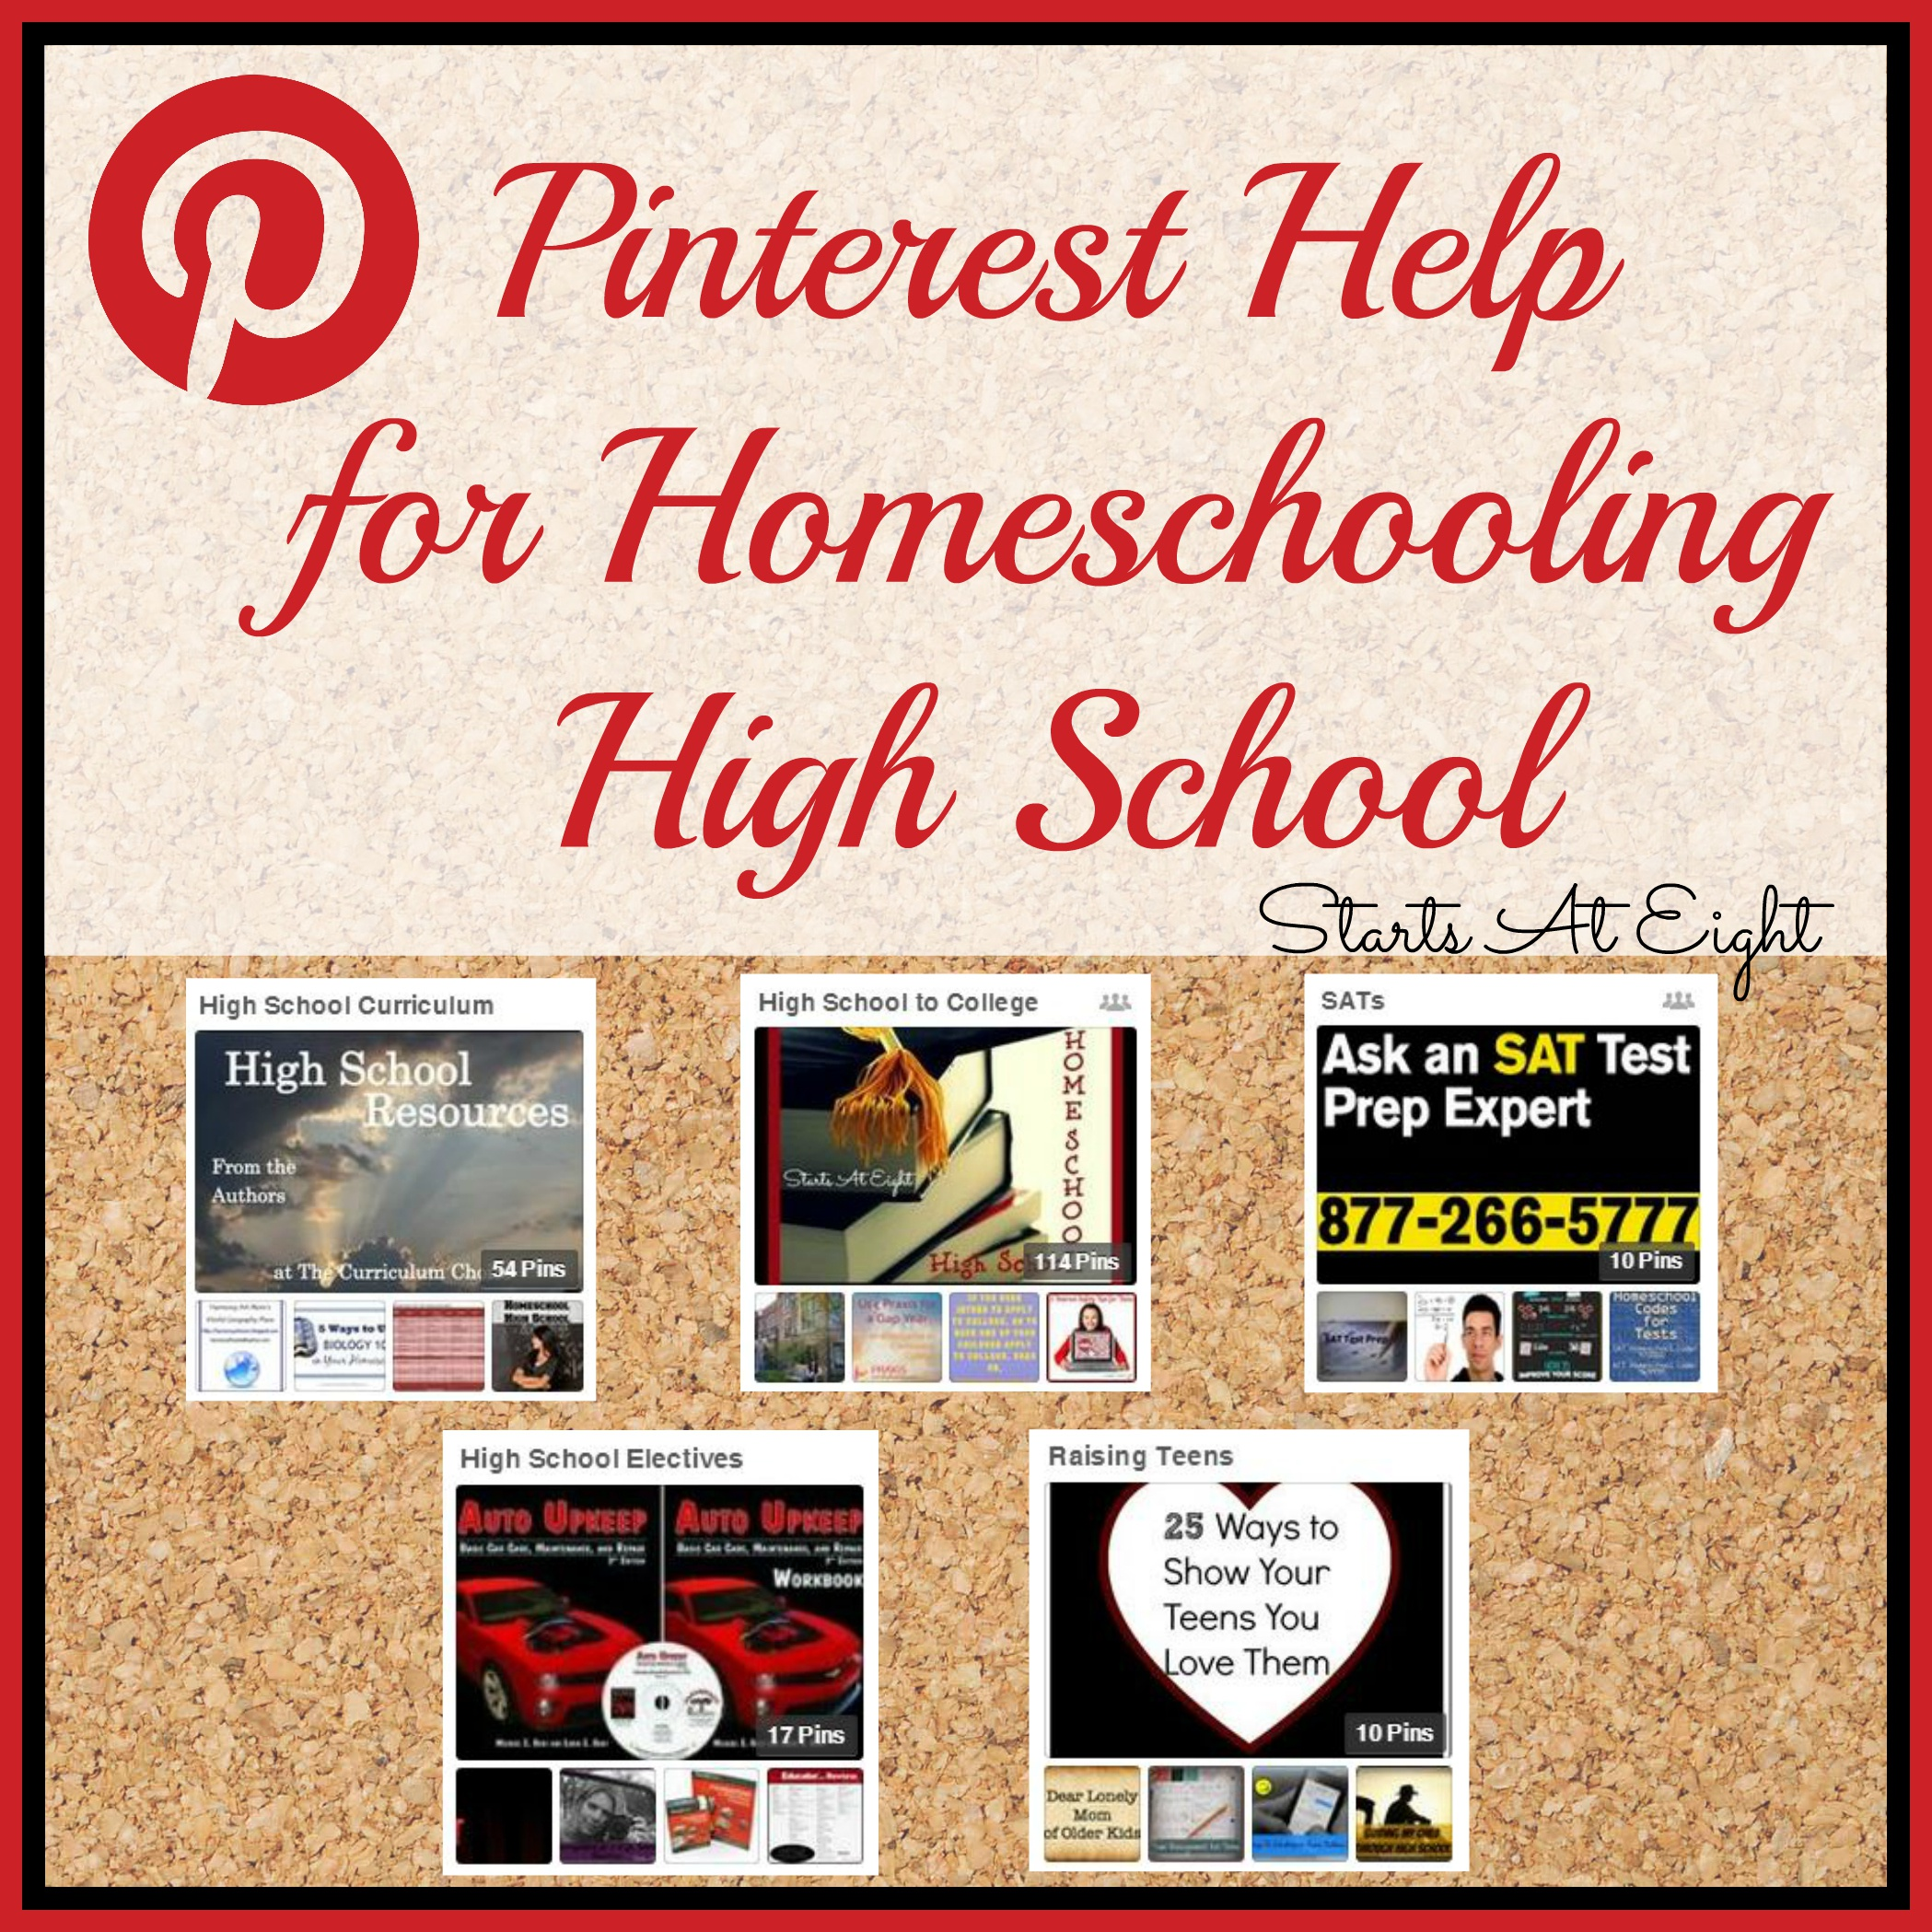 Pinterest Help for Homeschooling High School